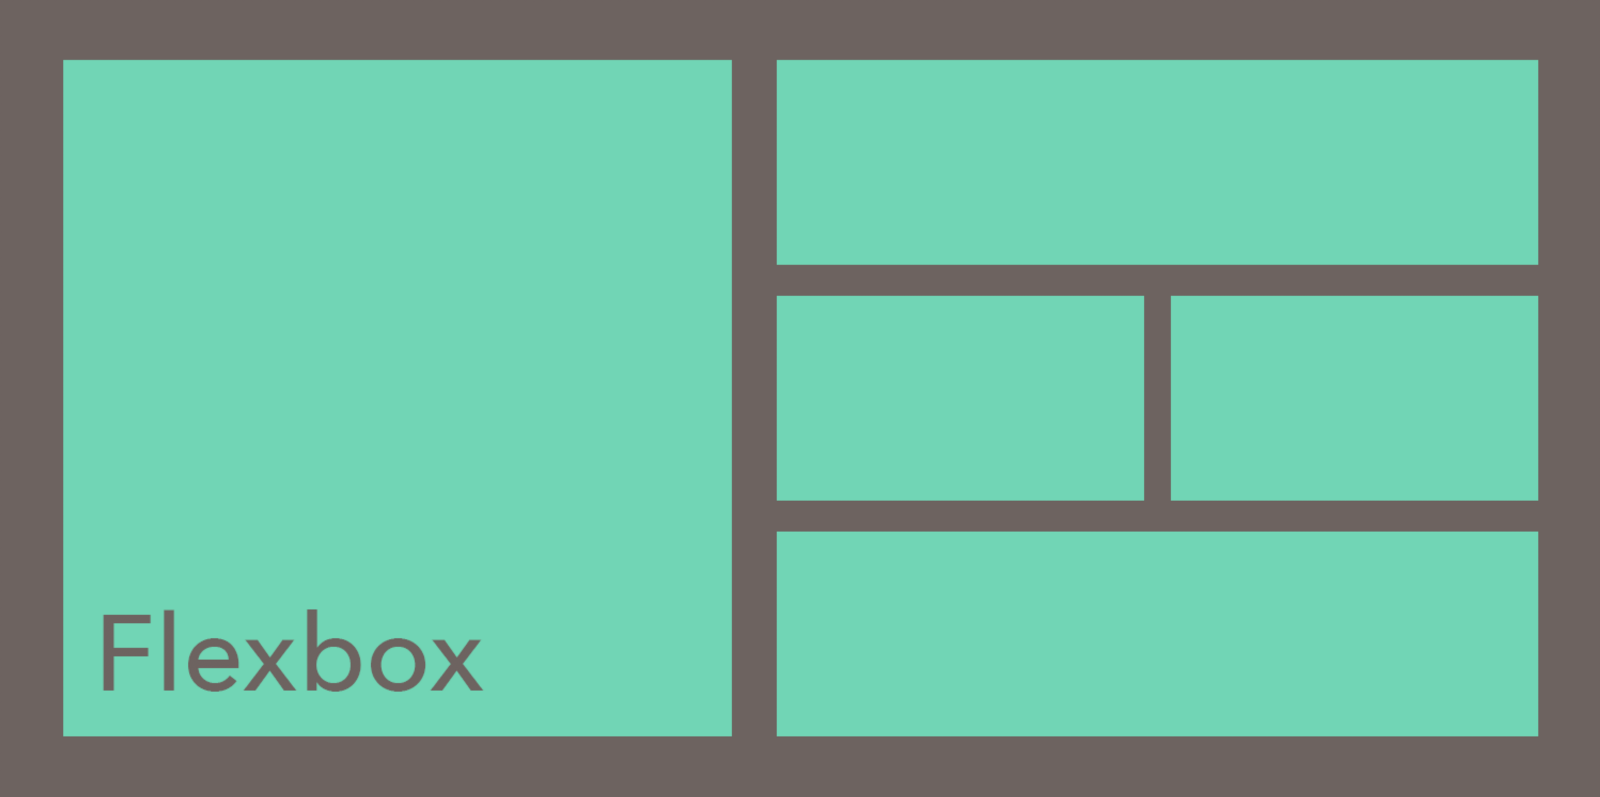 Flexbox Building A Navigation Bar Part 22 Codeburst